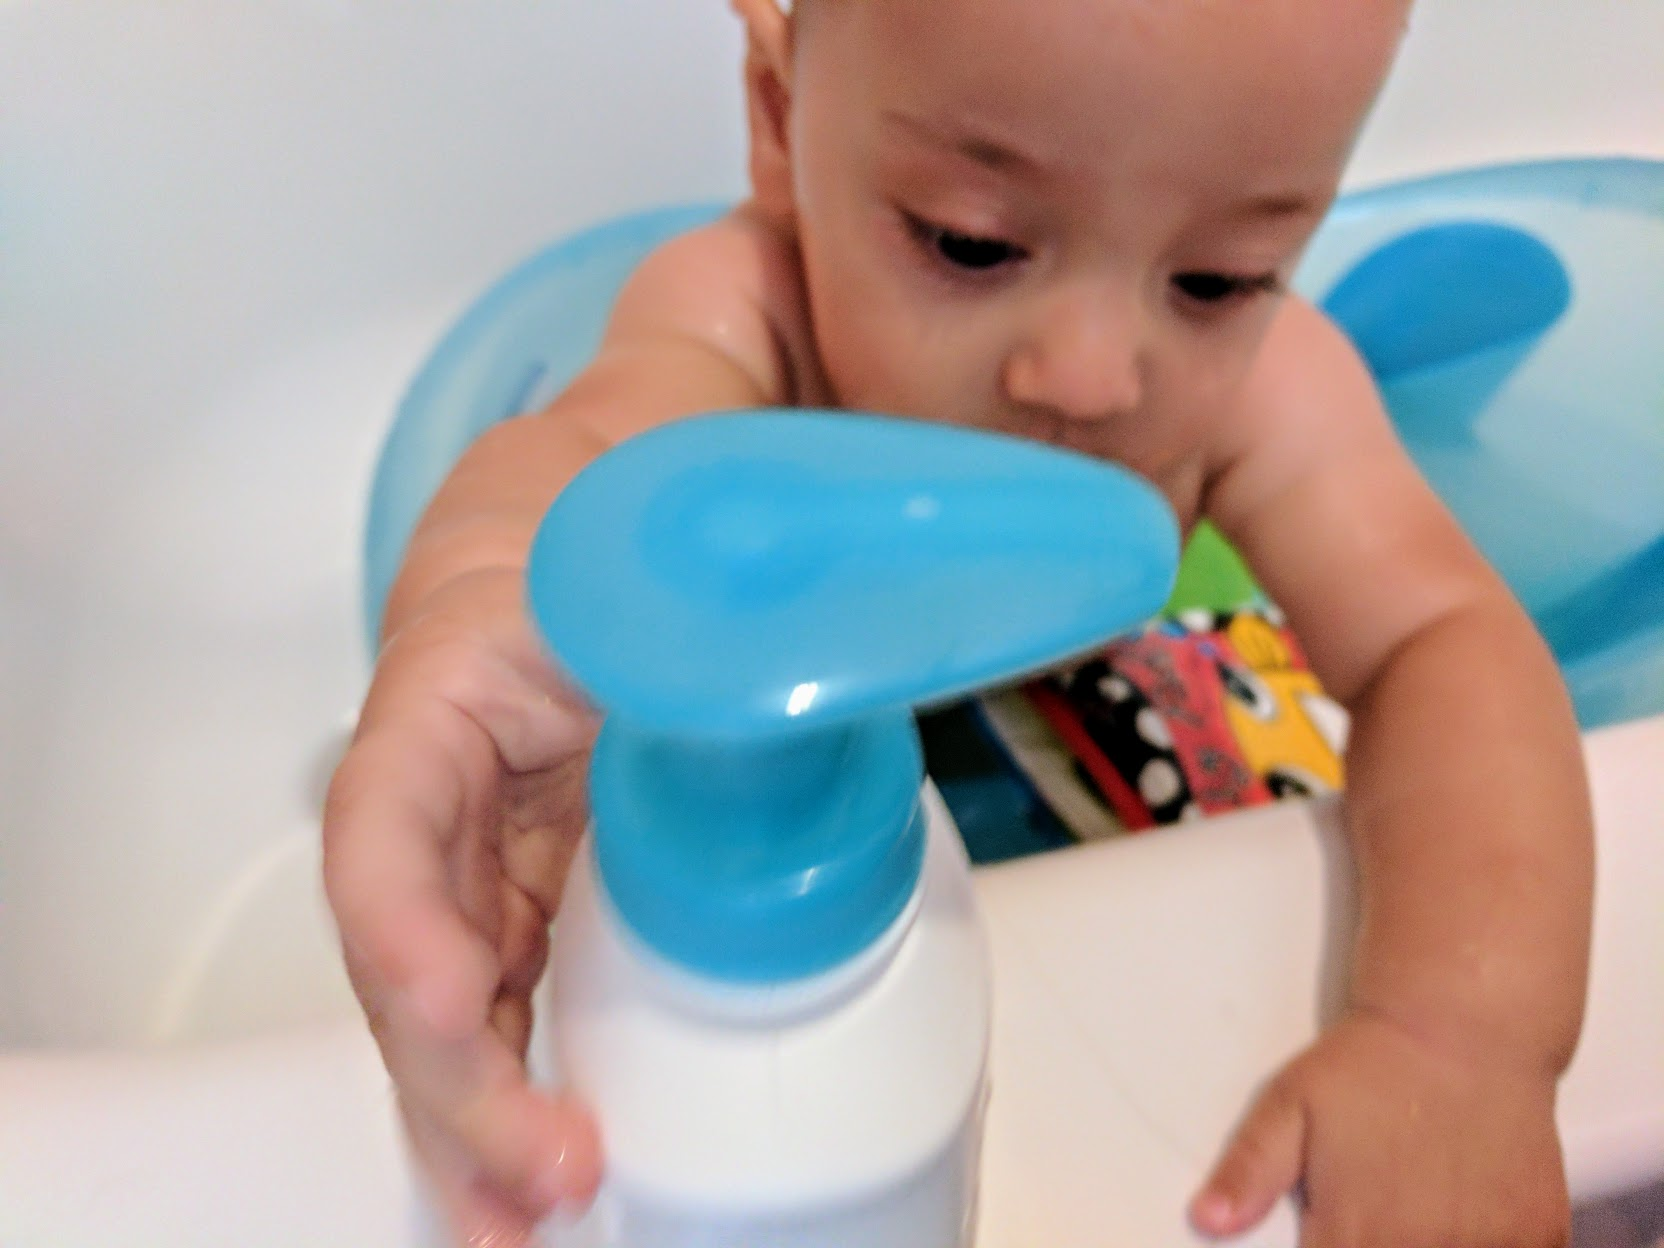 The bottle also makes a great bath toy